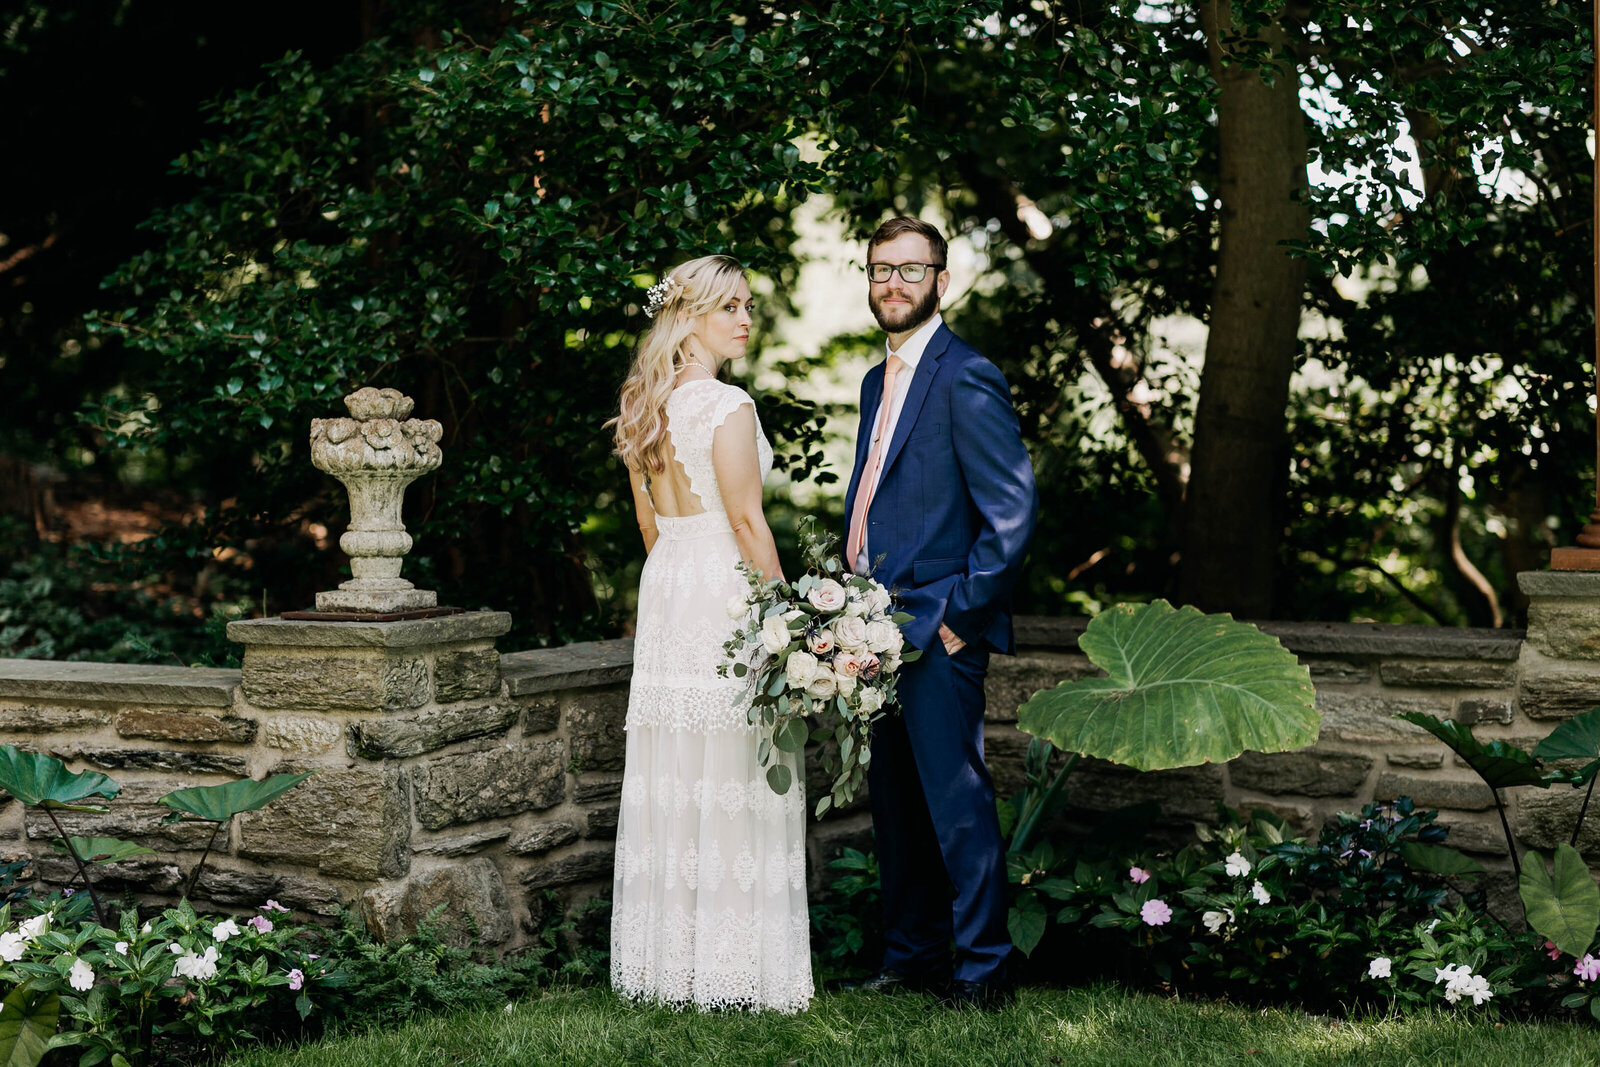 bride and groom in floral garden